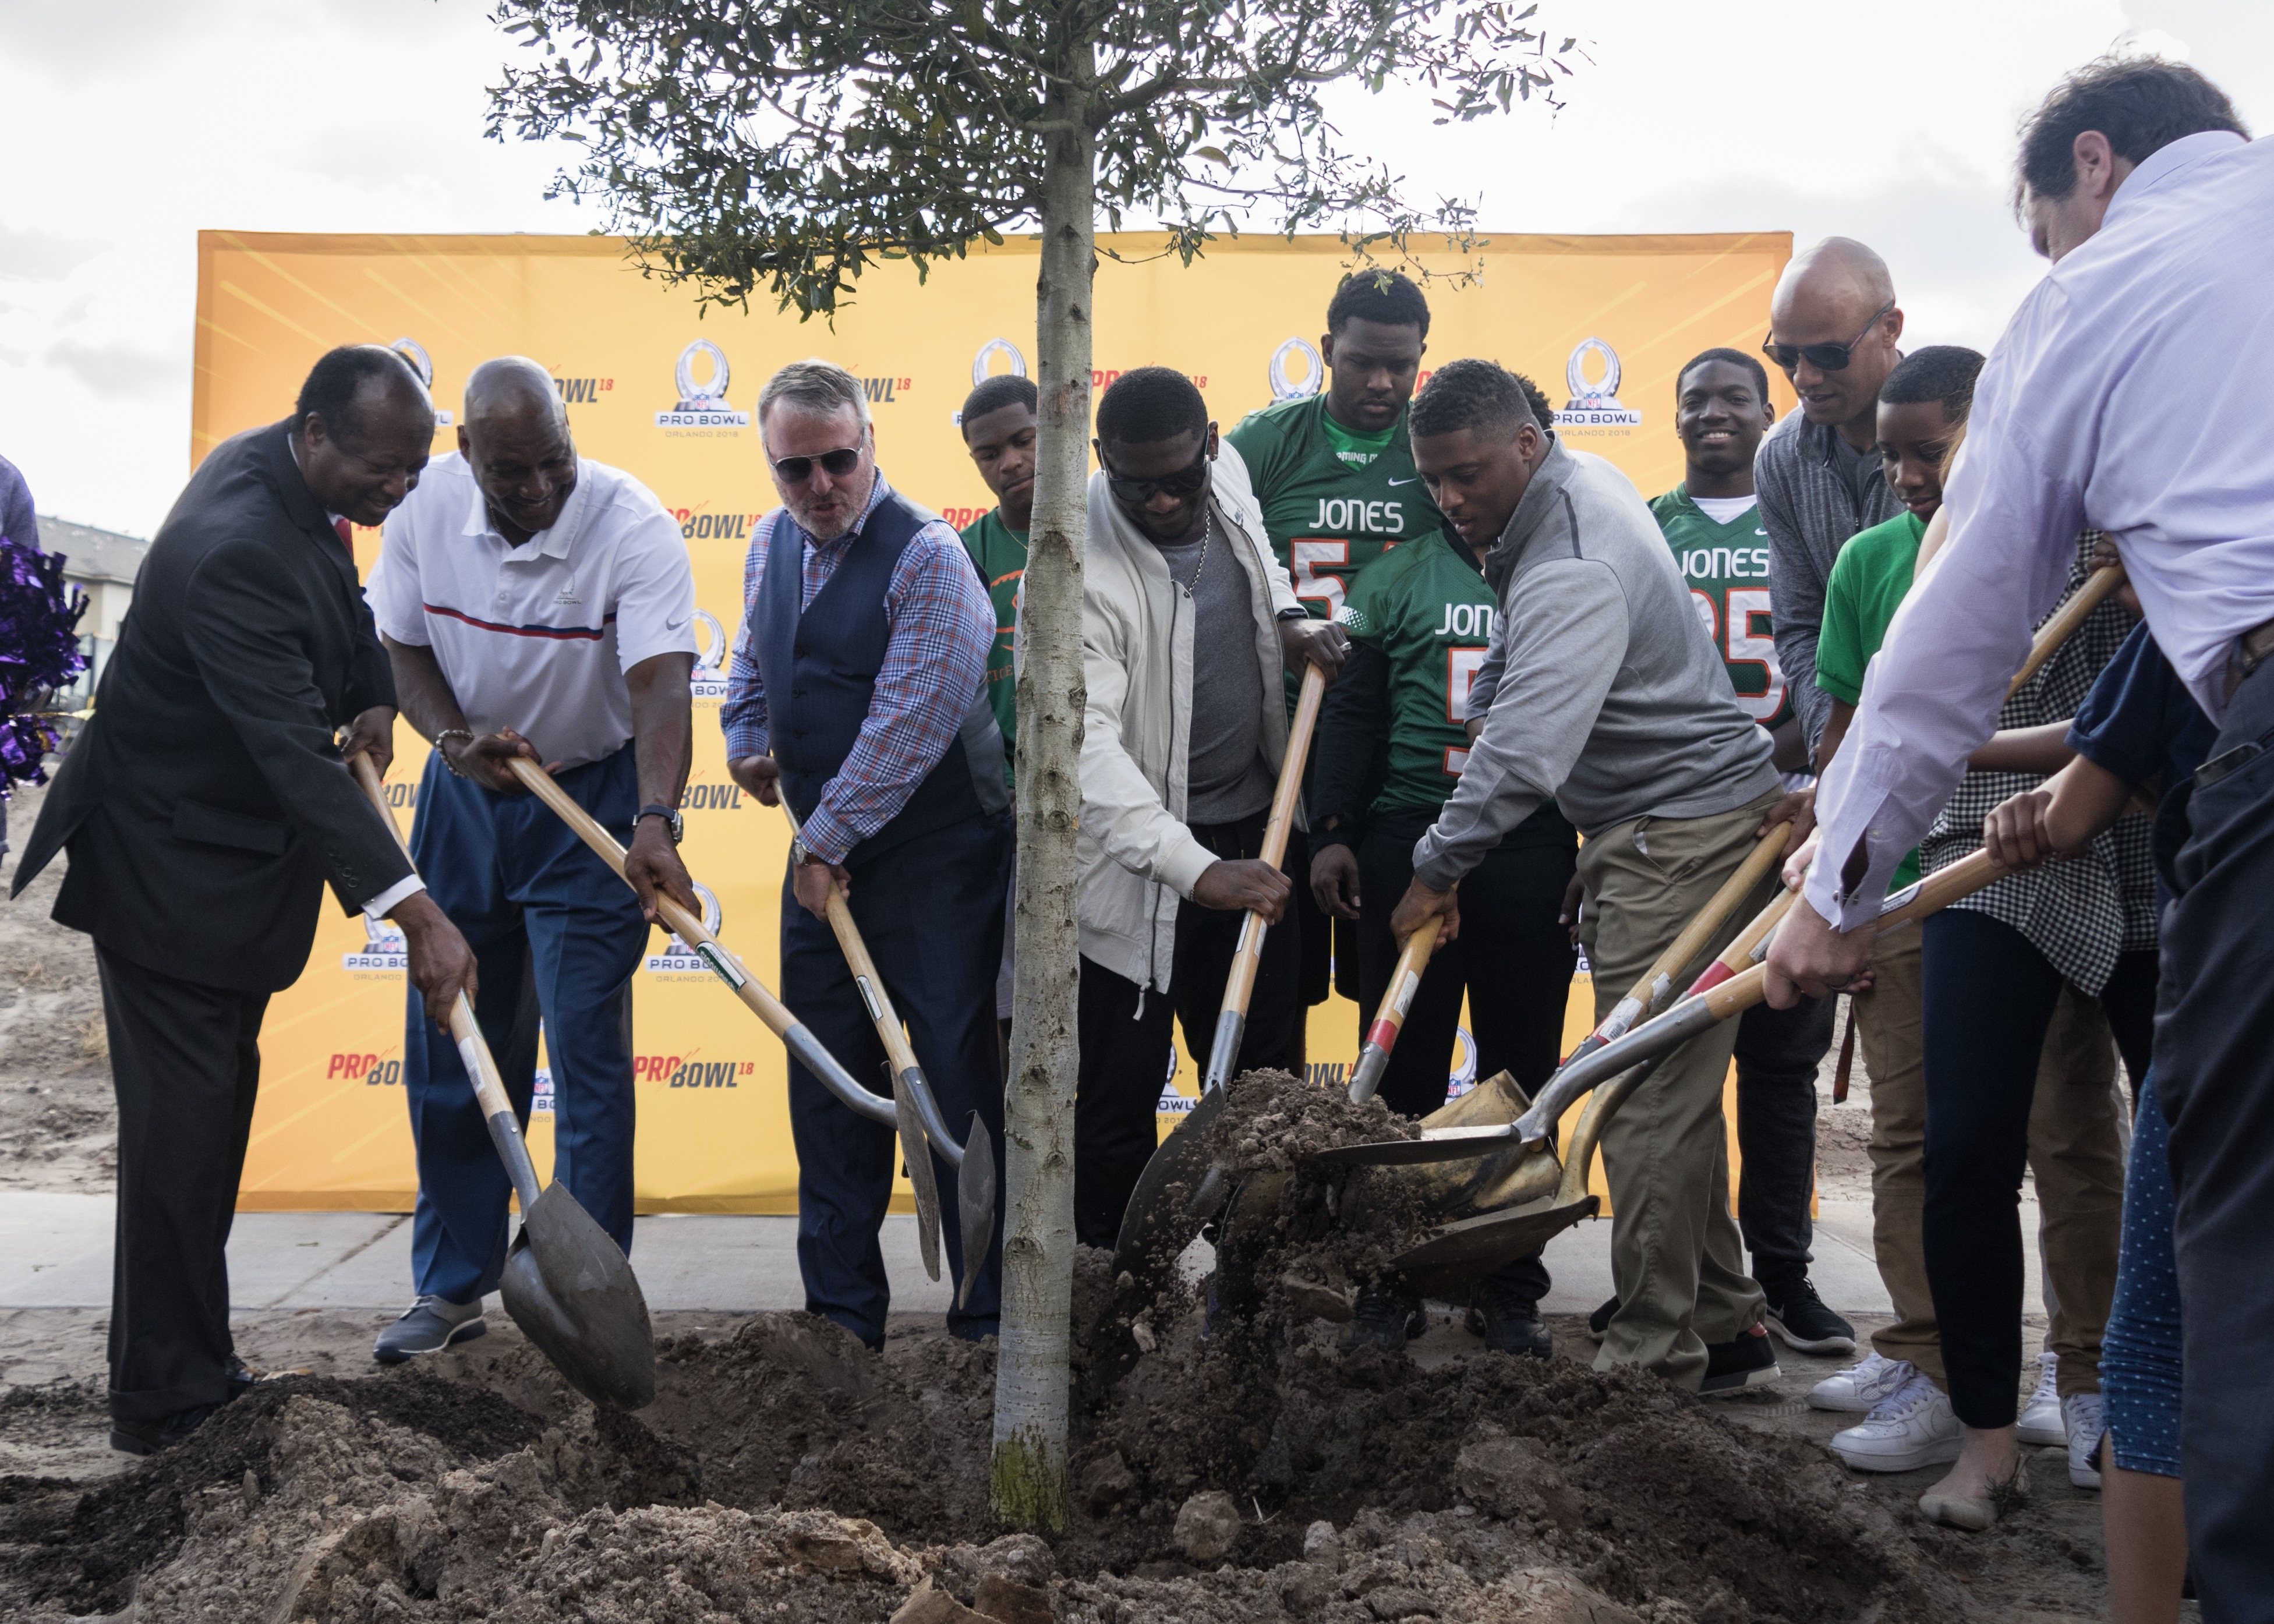 ORLANDO, Fla. (FNN NEWS) - Orlando Mayor Buddy Dyer plants a tree with NFL Pro Bowl Legends Captains at a 2018 NFL Pro Bowl community event in Orlando. Photo: Adrian Hernandez/Florida National News.